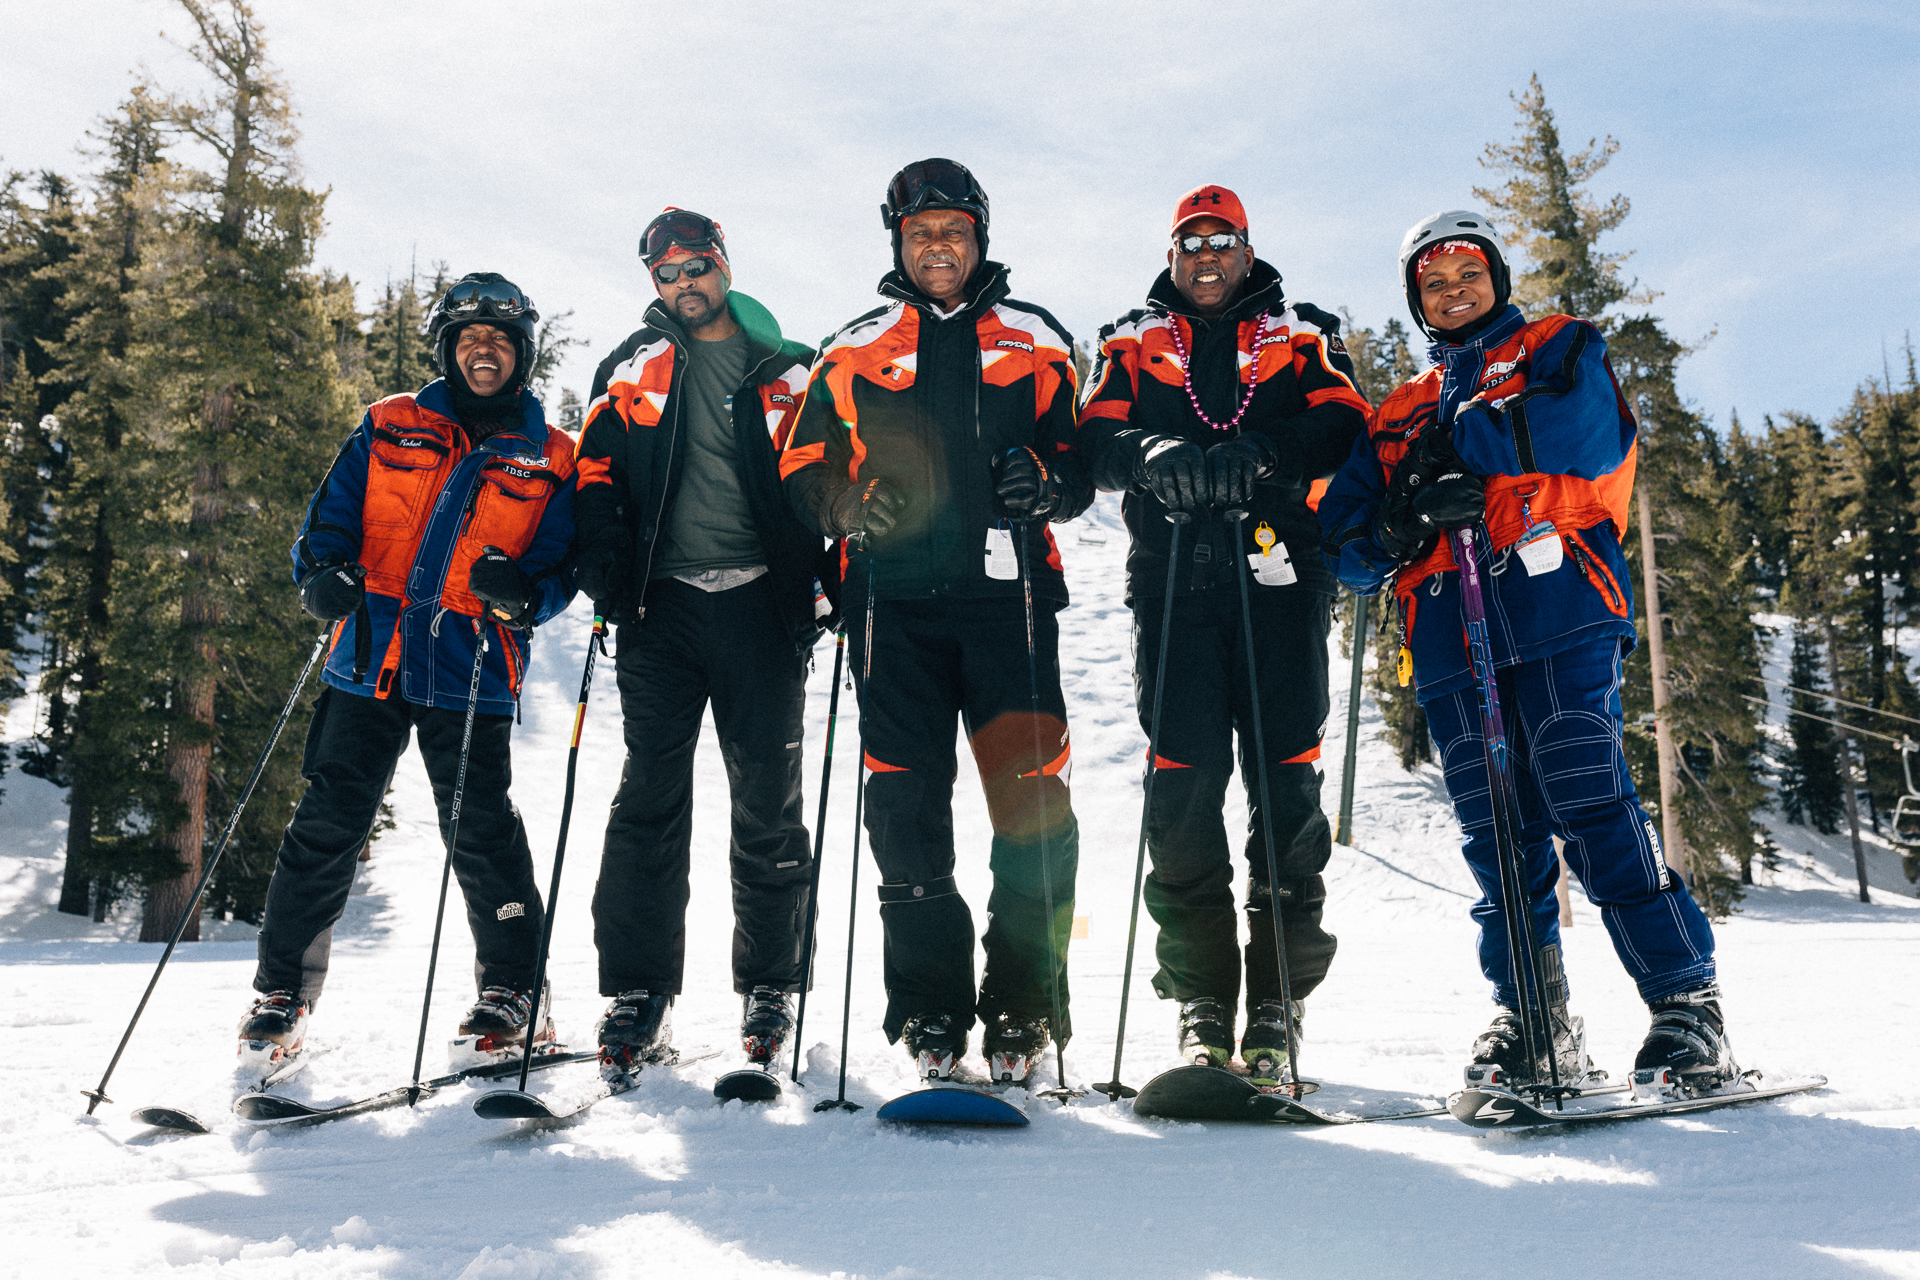 Members of Jim Dandy and All Seasons show the benefits to enrollment in a ski club: The best jackets in skiing, and the chance to make monoskiing cool again.